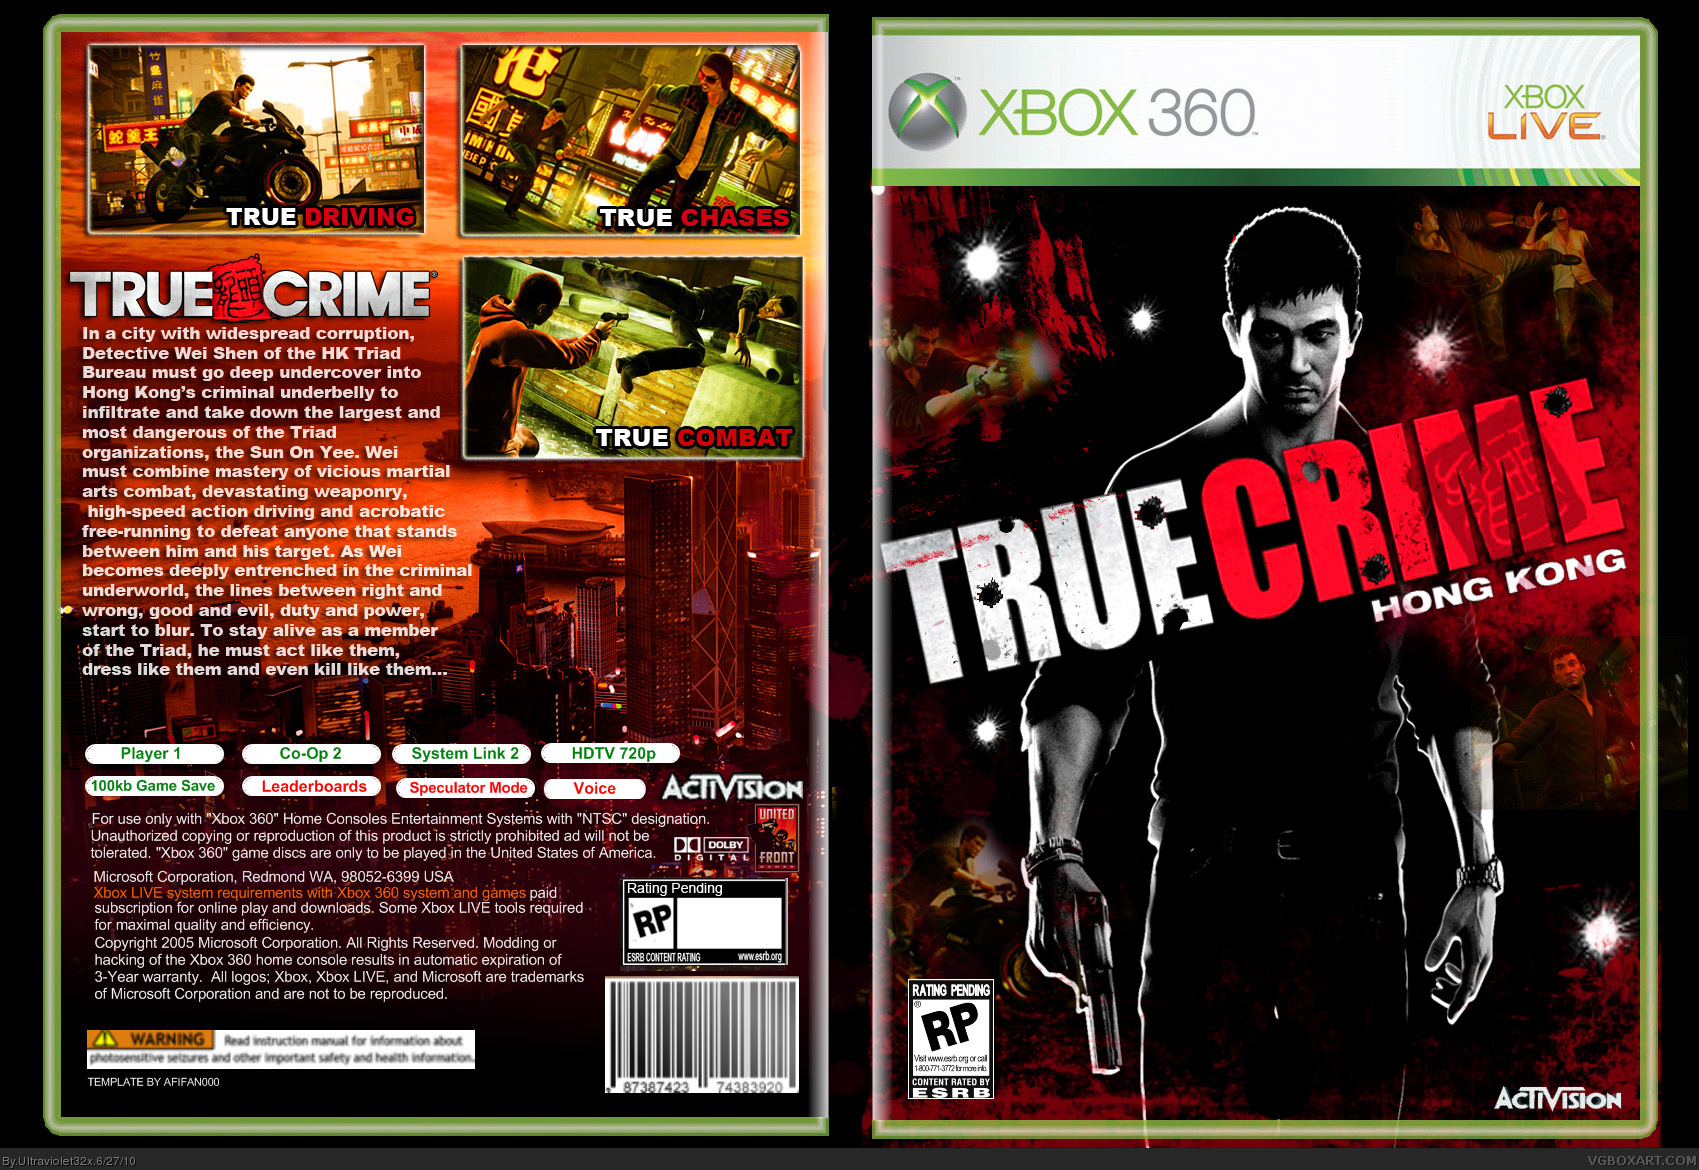 Viewing full size True Crime box cover